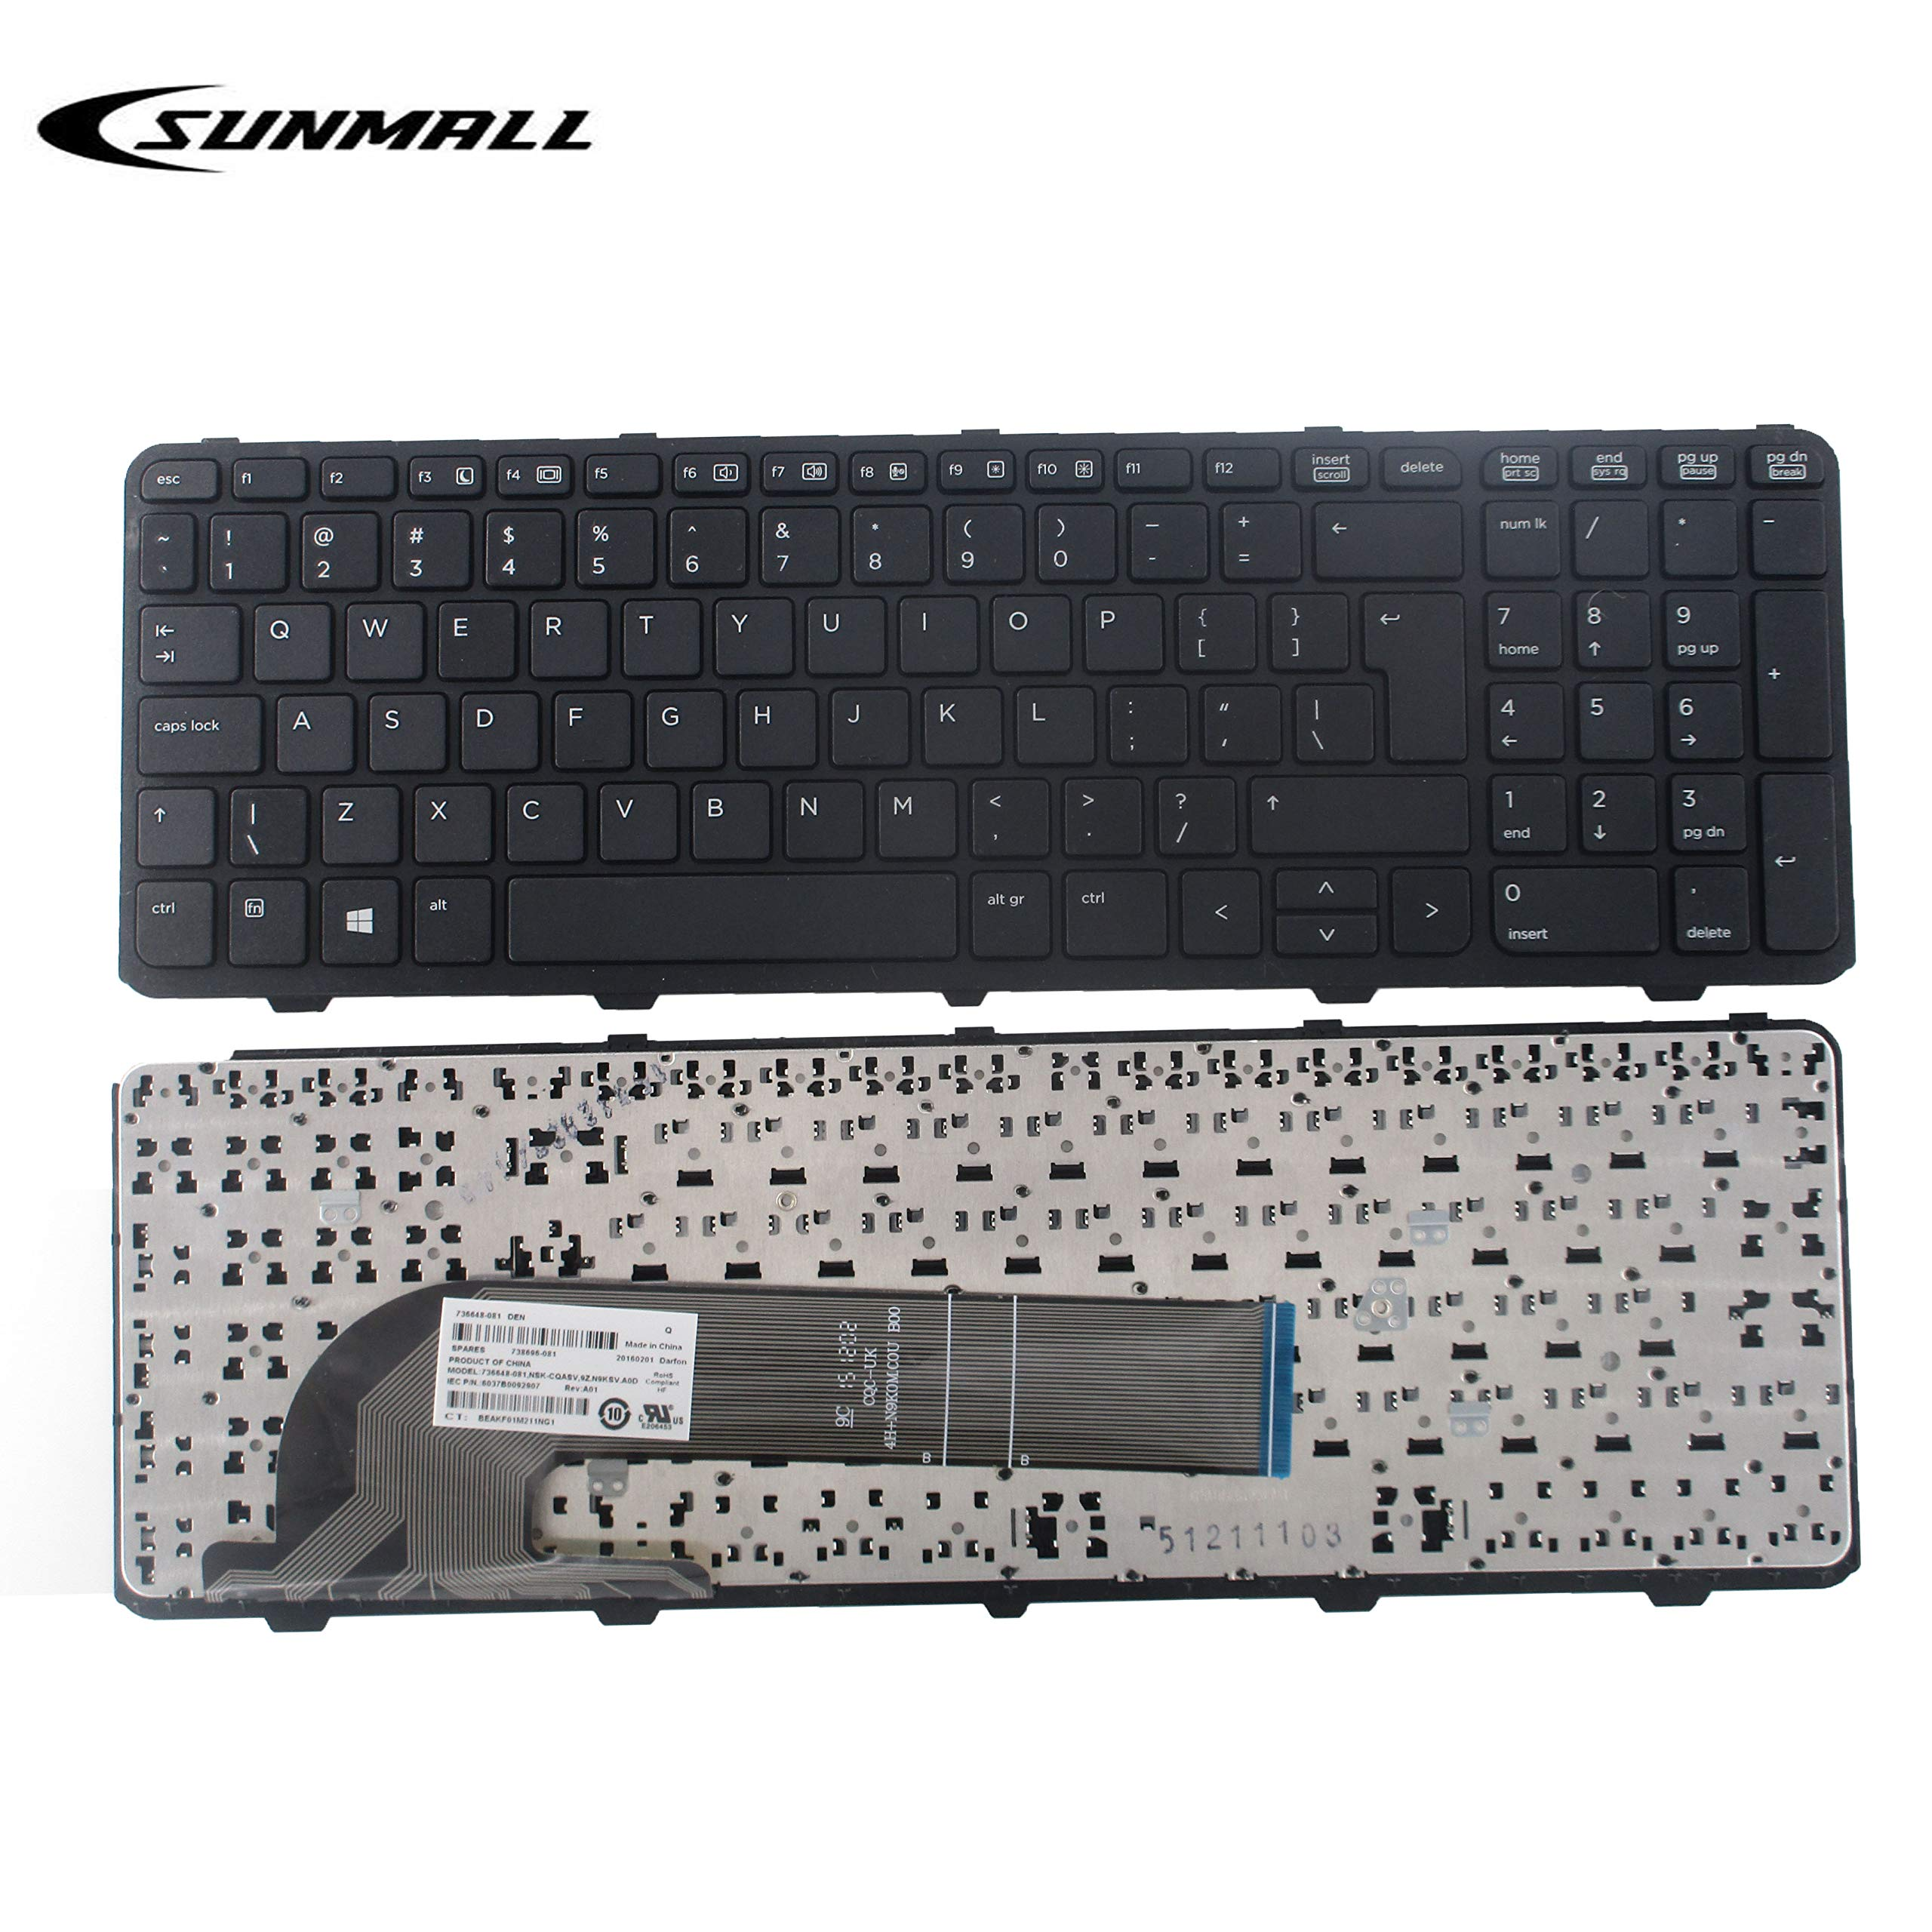 SUNMALL New Laptop Keyboard Replacement with Frame, Without Backlit, Compatible with HP Probook 450 G0 450 G1 Series Black US Layout